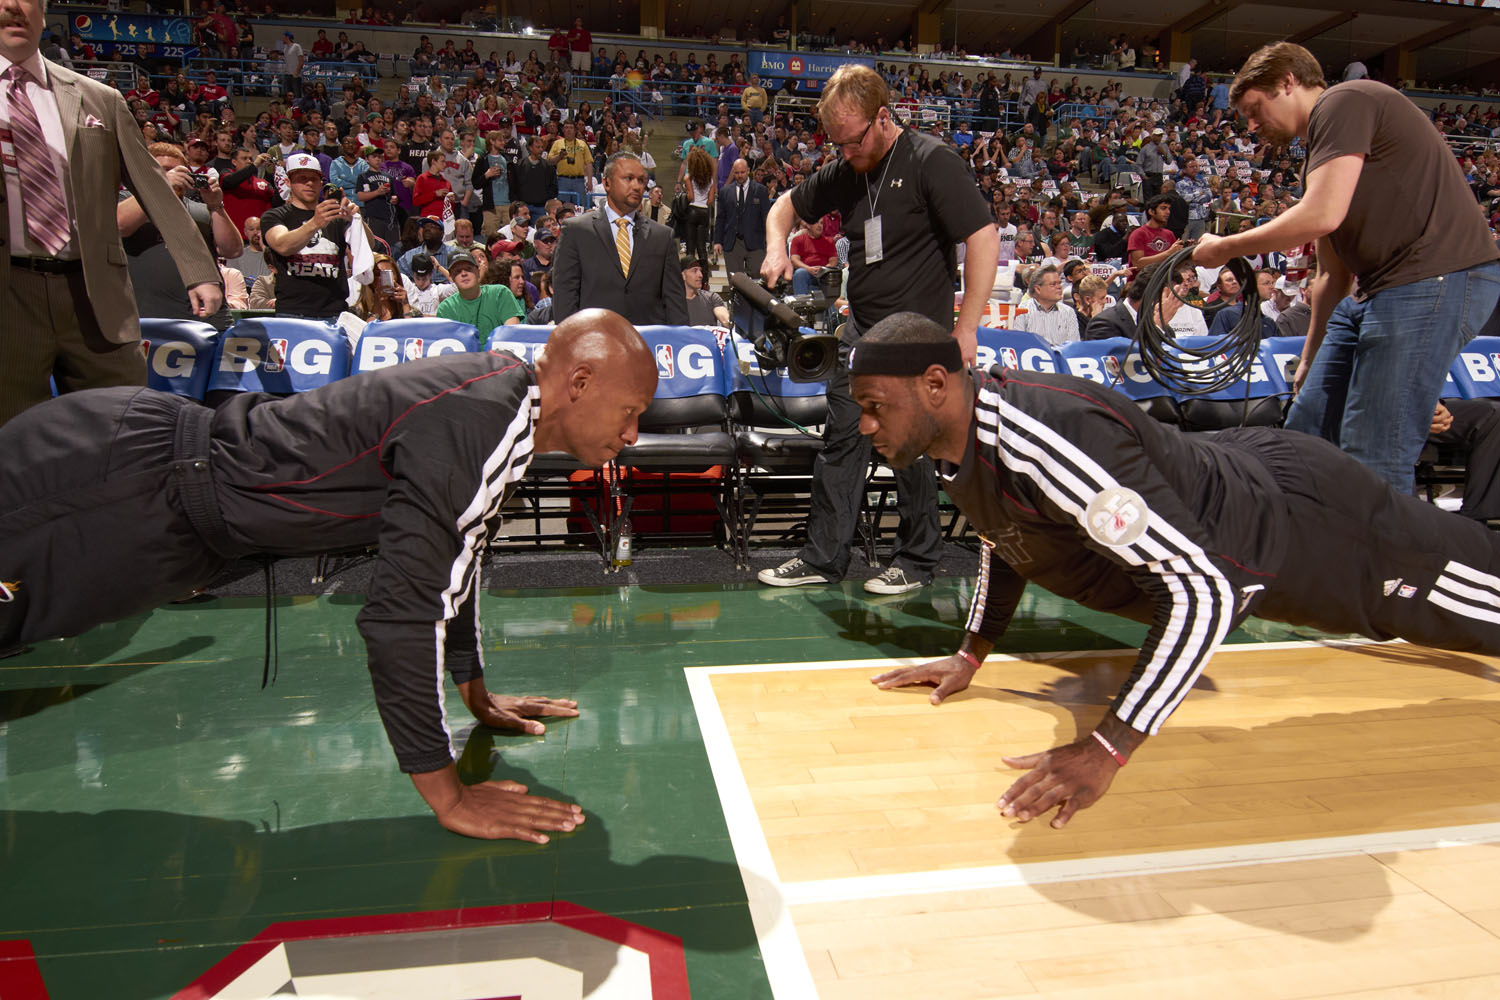 The Miami Heat's LeBron James (R) stretching with Ray Allen (L) before a game against the Milwaukee Bucks at the Bradley Center in 2013.